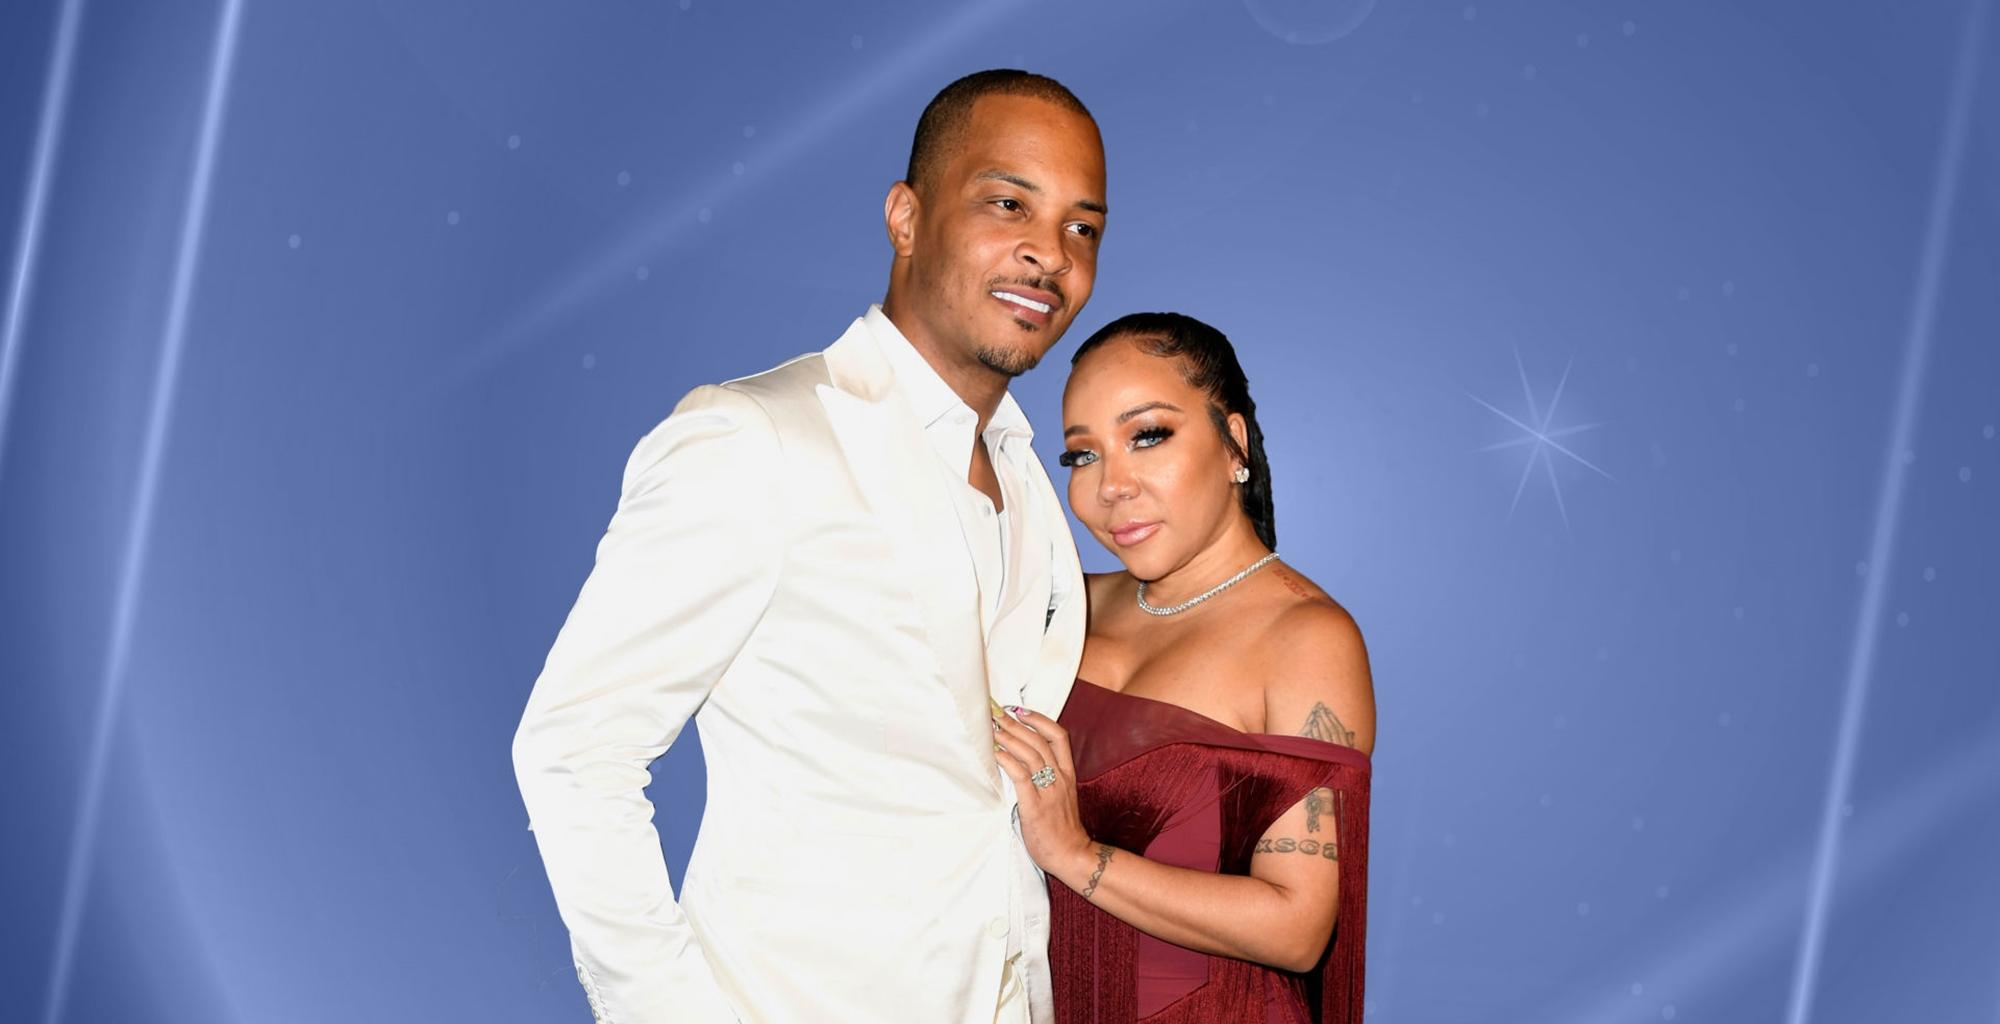 Tiny Harris Responds To Critics Who Bash Her For Staying With Alleged Serial Cheater T.I. Because Of The Lavish Lifestyle -- See Video That Sparked Heated Debate On Infidelity And Polygamy